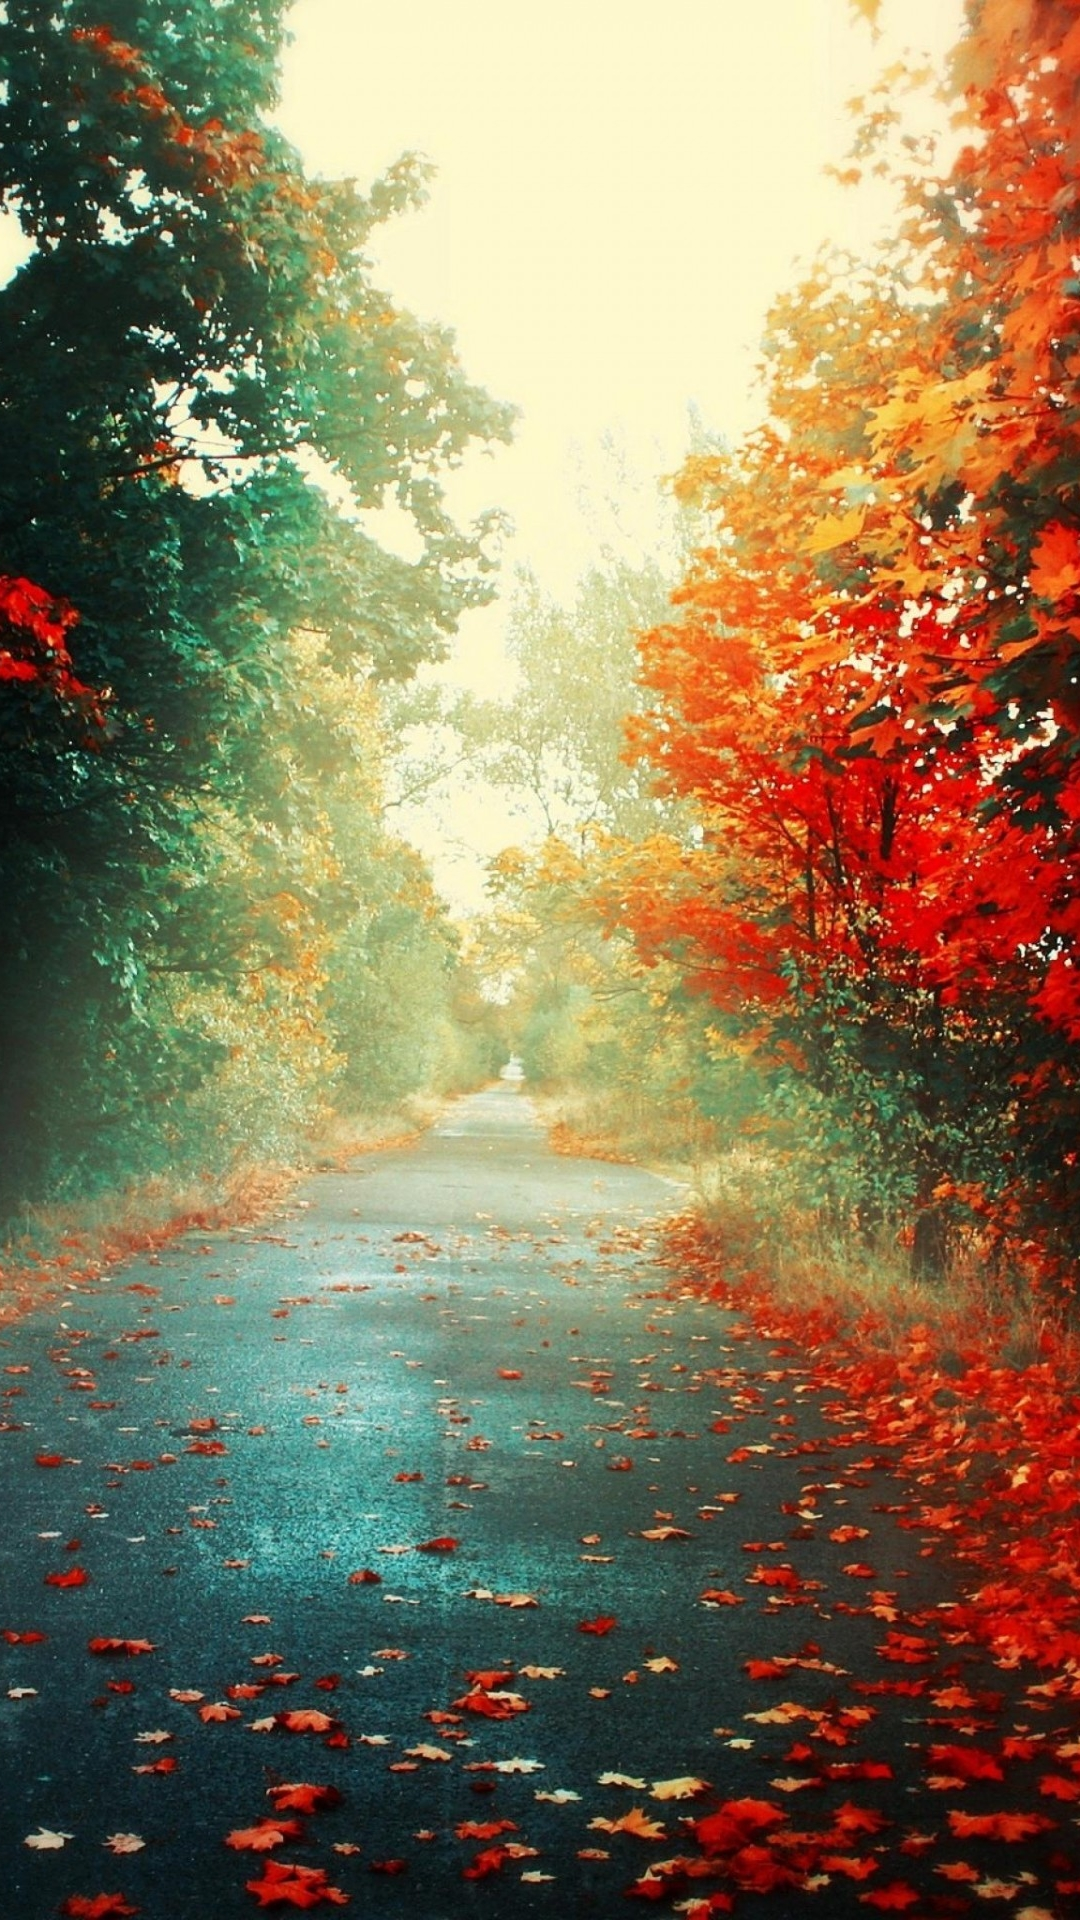 Autumn RoadSamsung Wallpaper Download | Free Samsung Wallpapers